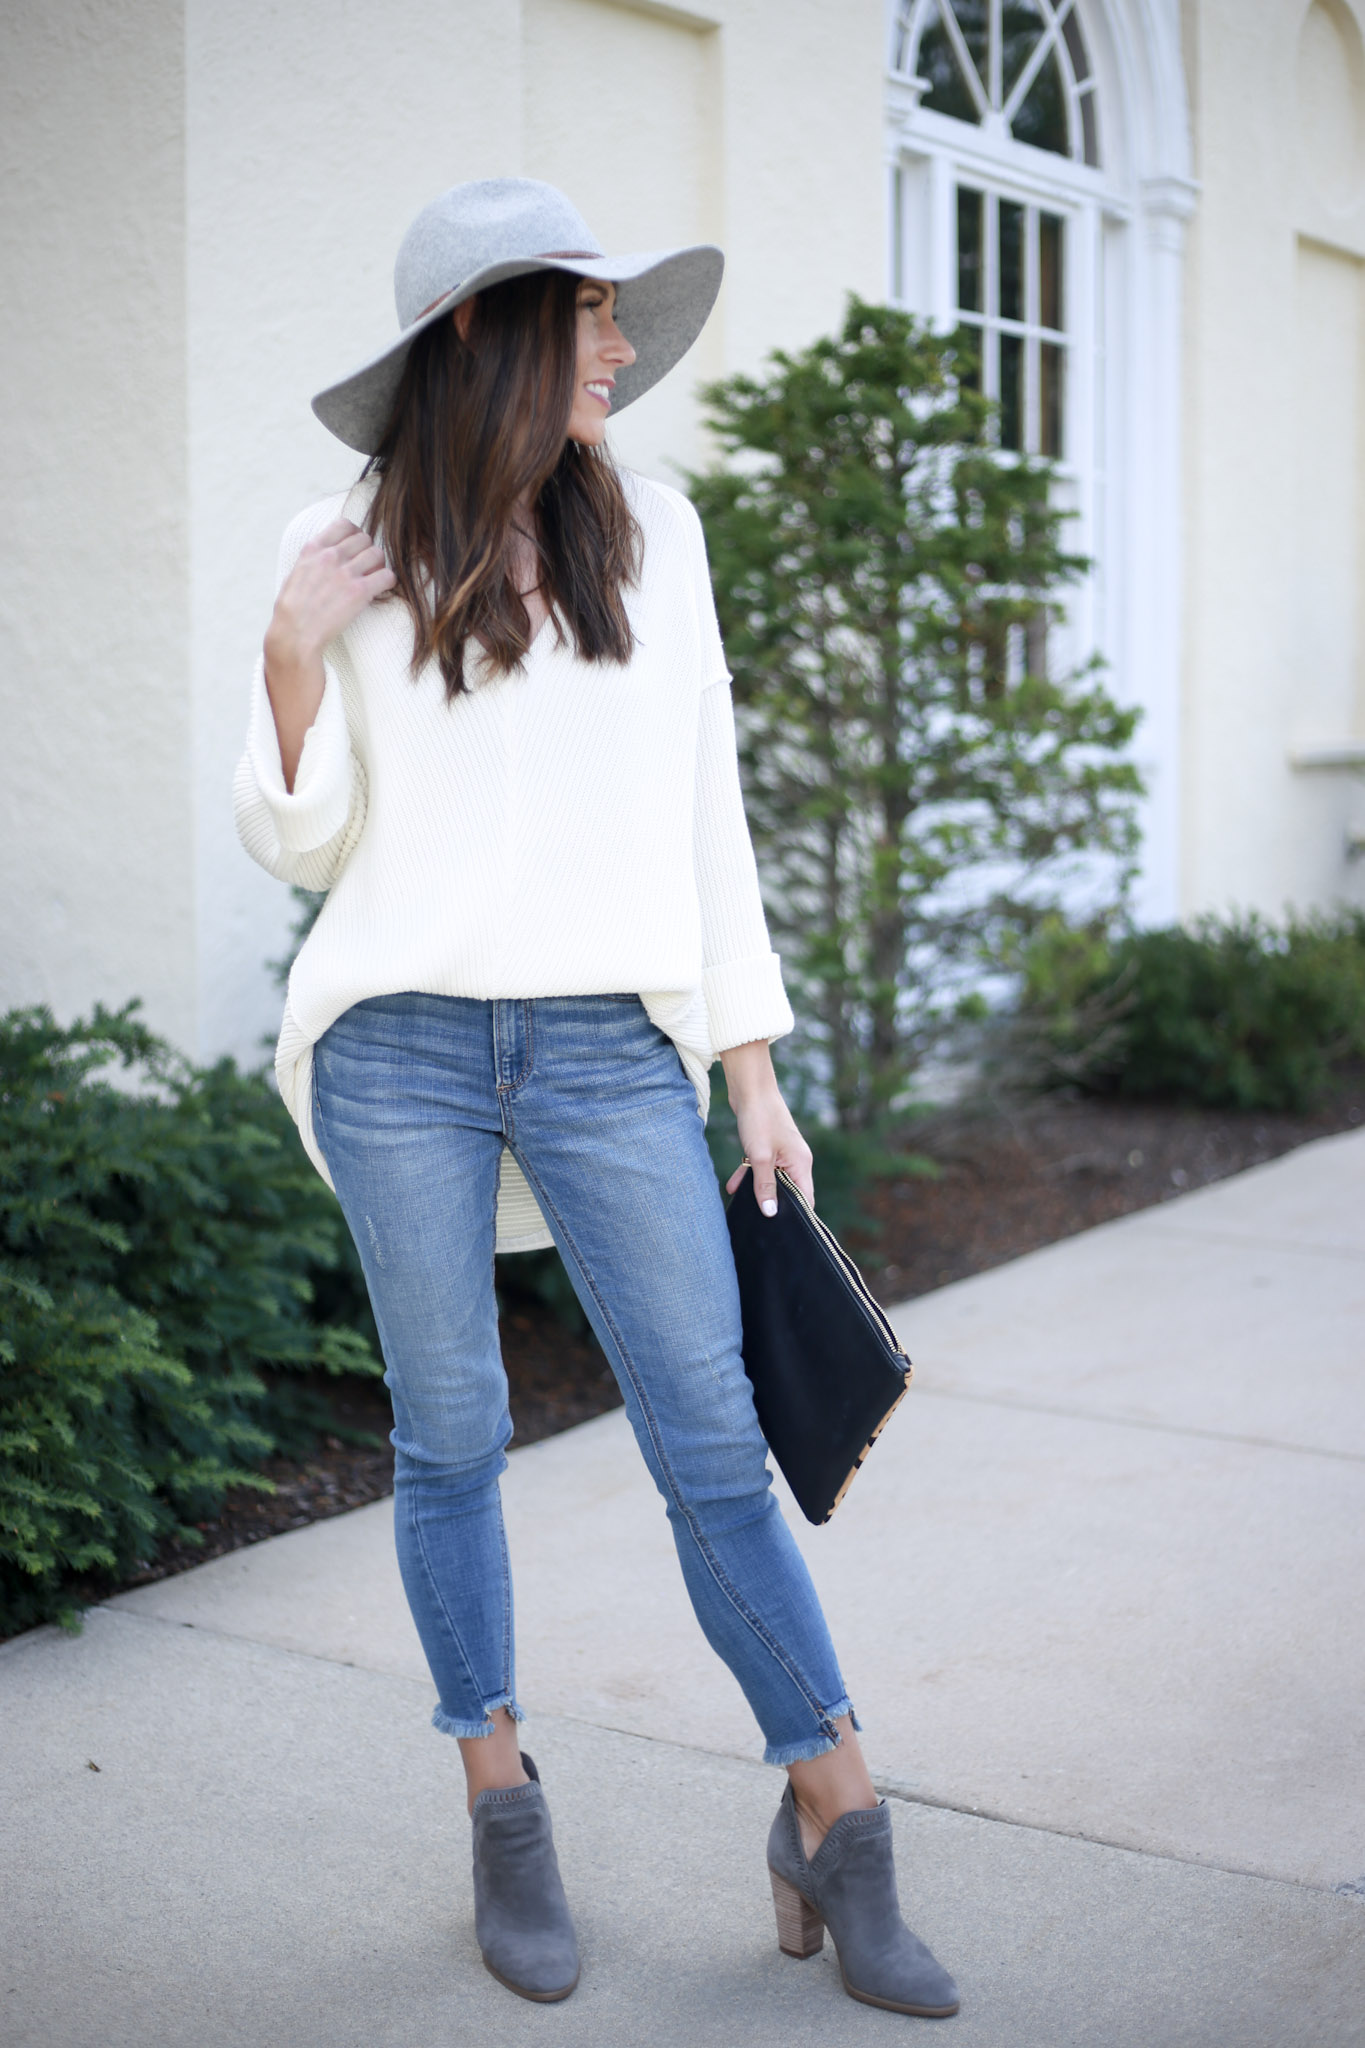 Finding the perfect fall sweater - The Knit Sweater by Boston fashion blogger Living Life Pretty